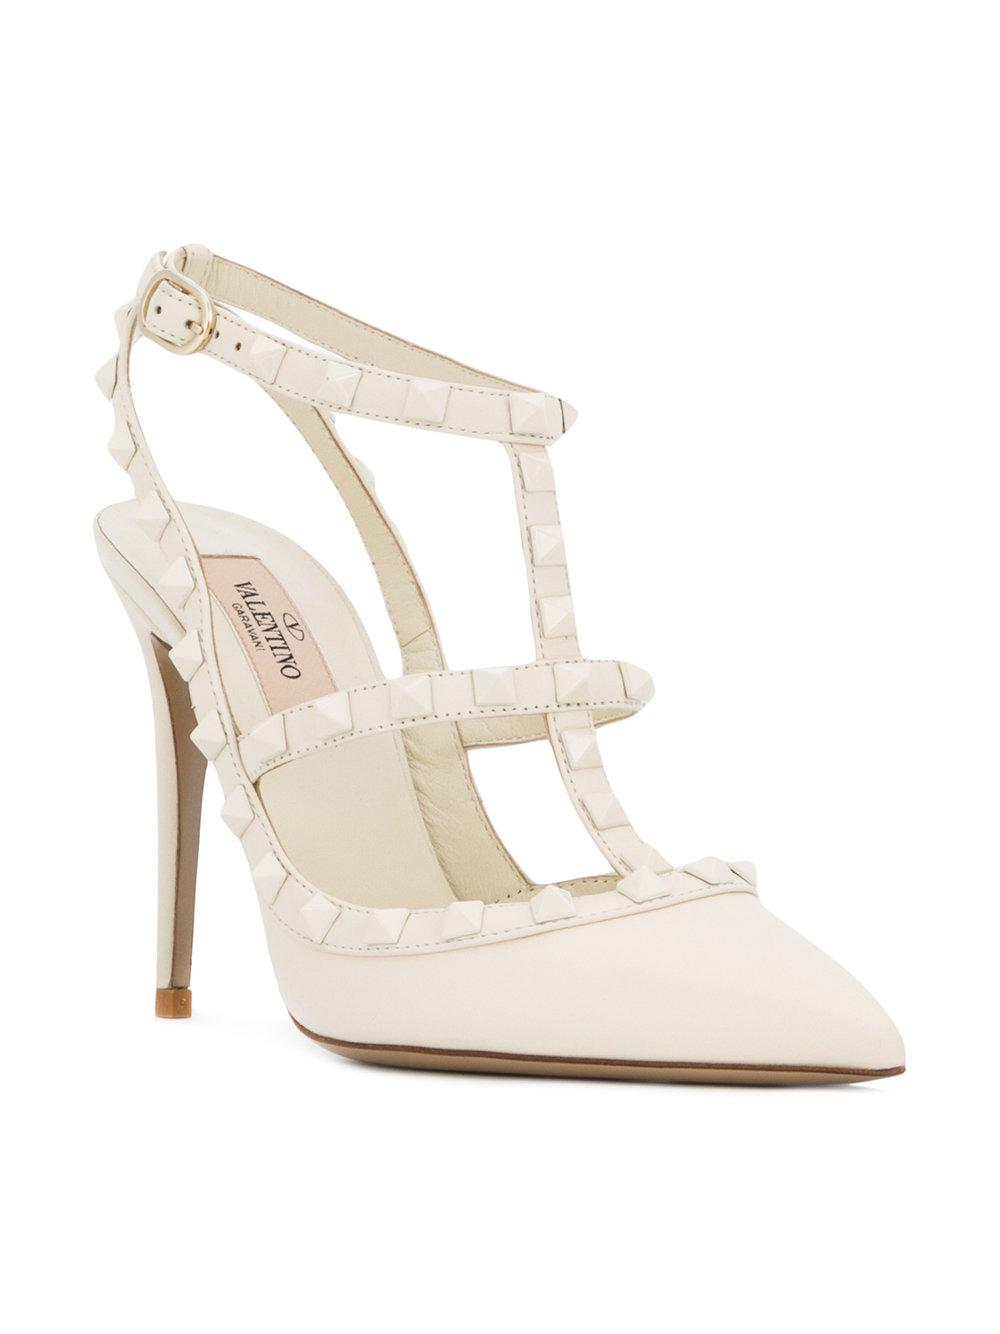 640dec6dd3f Valentino Garavani Rockstud Pumps in White - Lyst